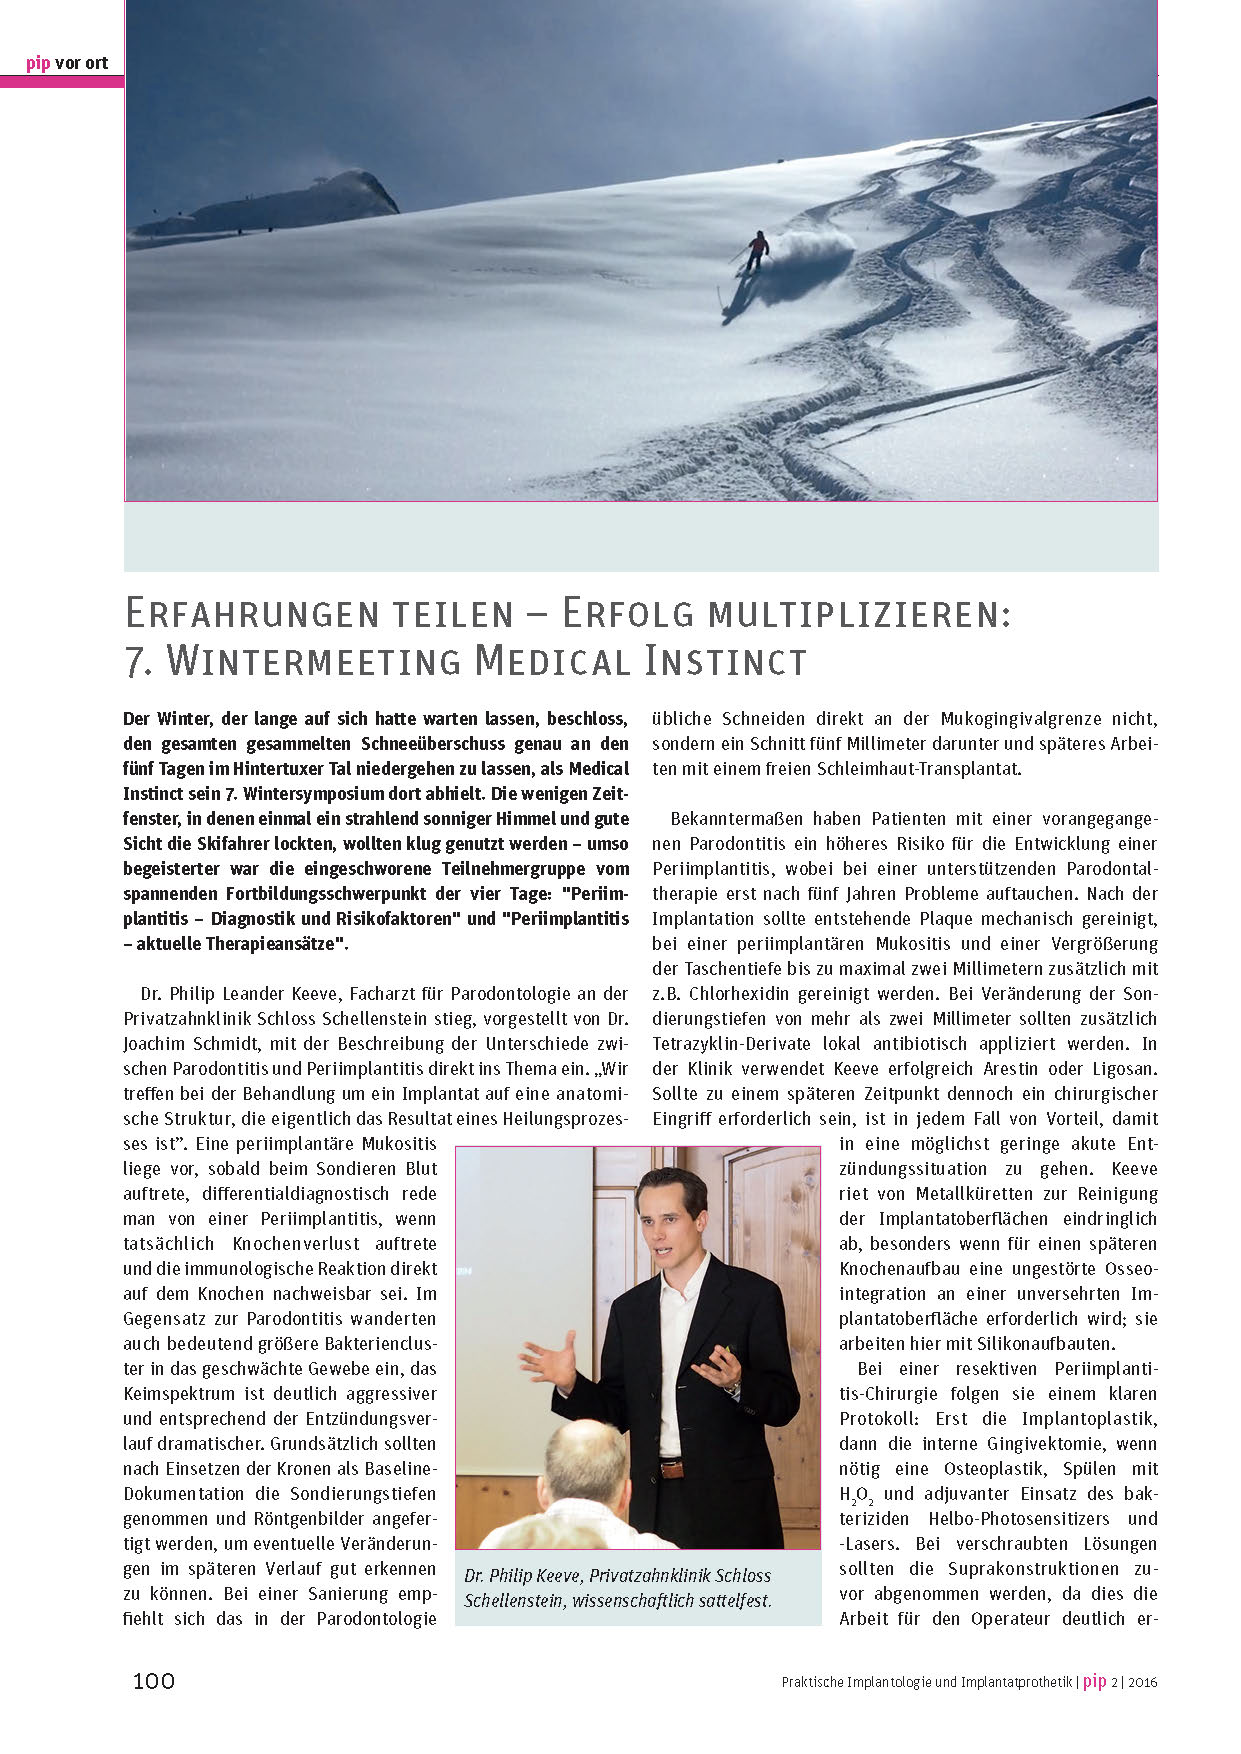 Pip – 7. Wintermeeting Medical Instinct